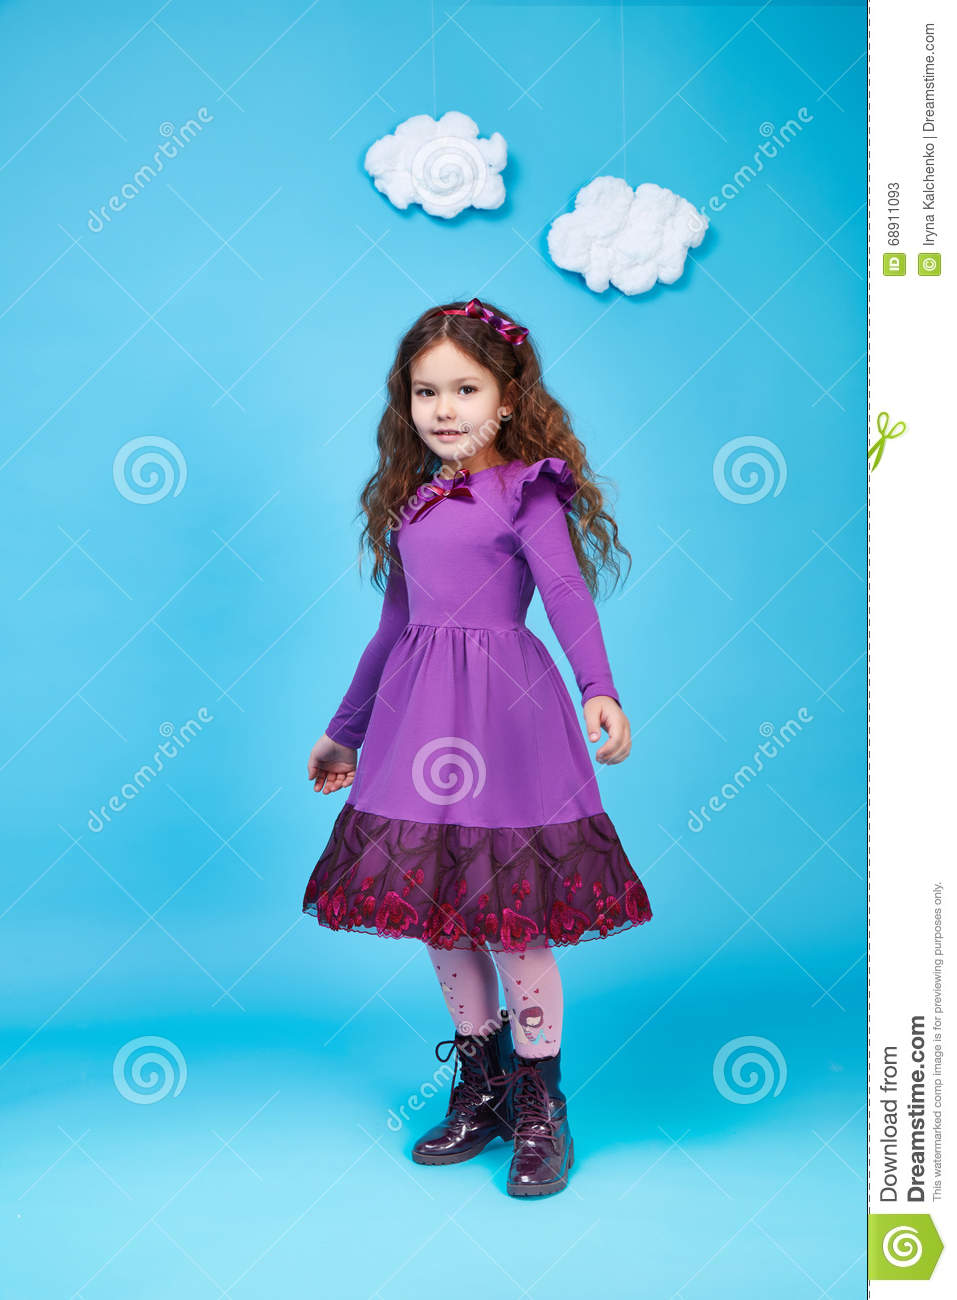 Kids Girl On Fashion Style Royalty Free Cartoon 86341439